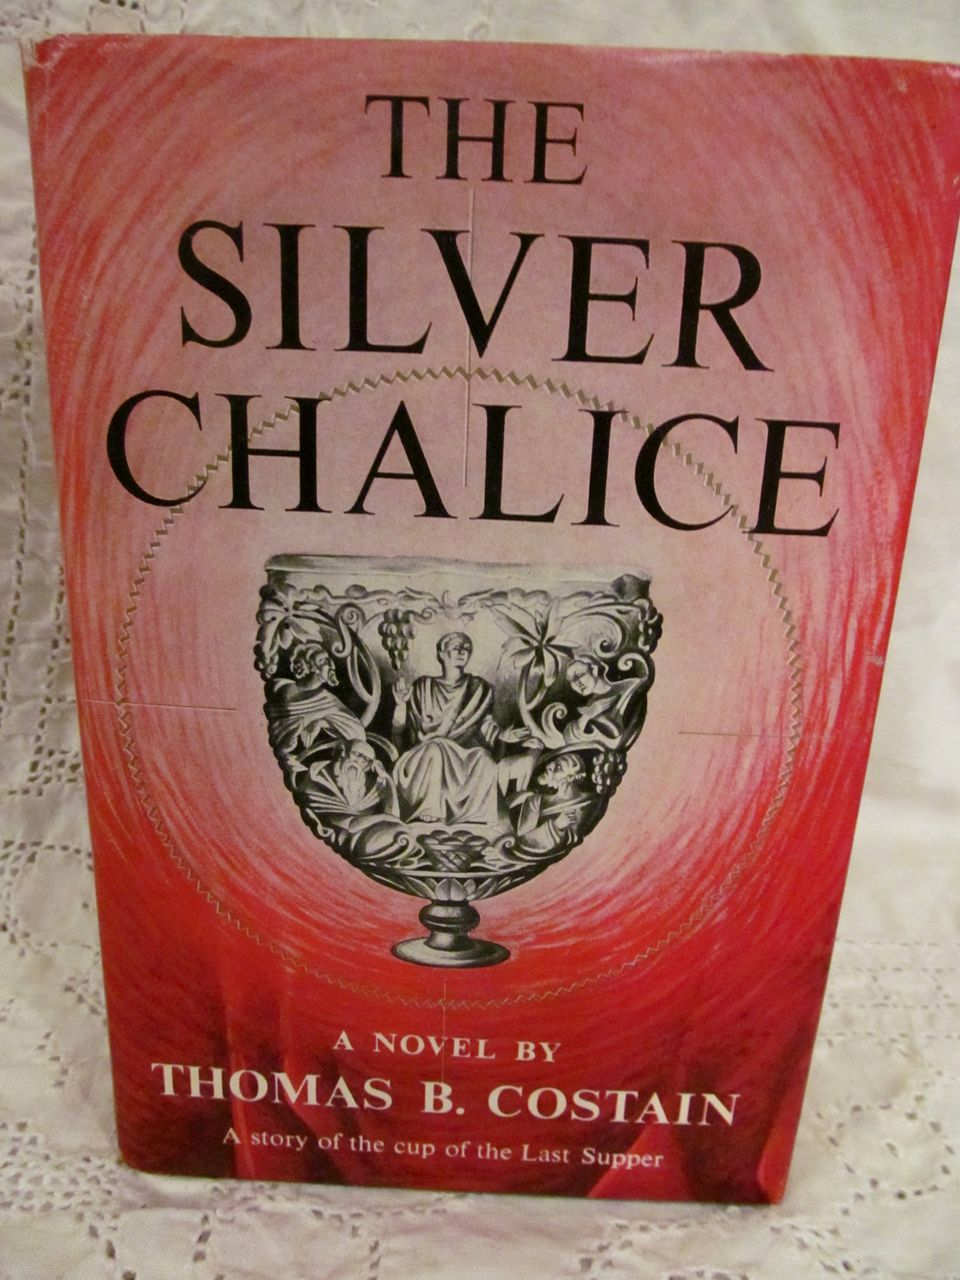 The Silver Chalice,Novel by Thomas B Costain, 1952, HB DJ